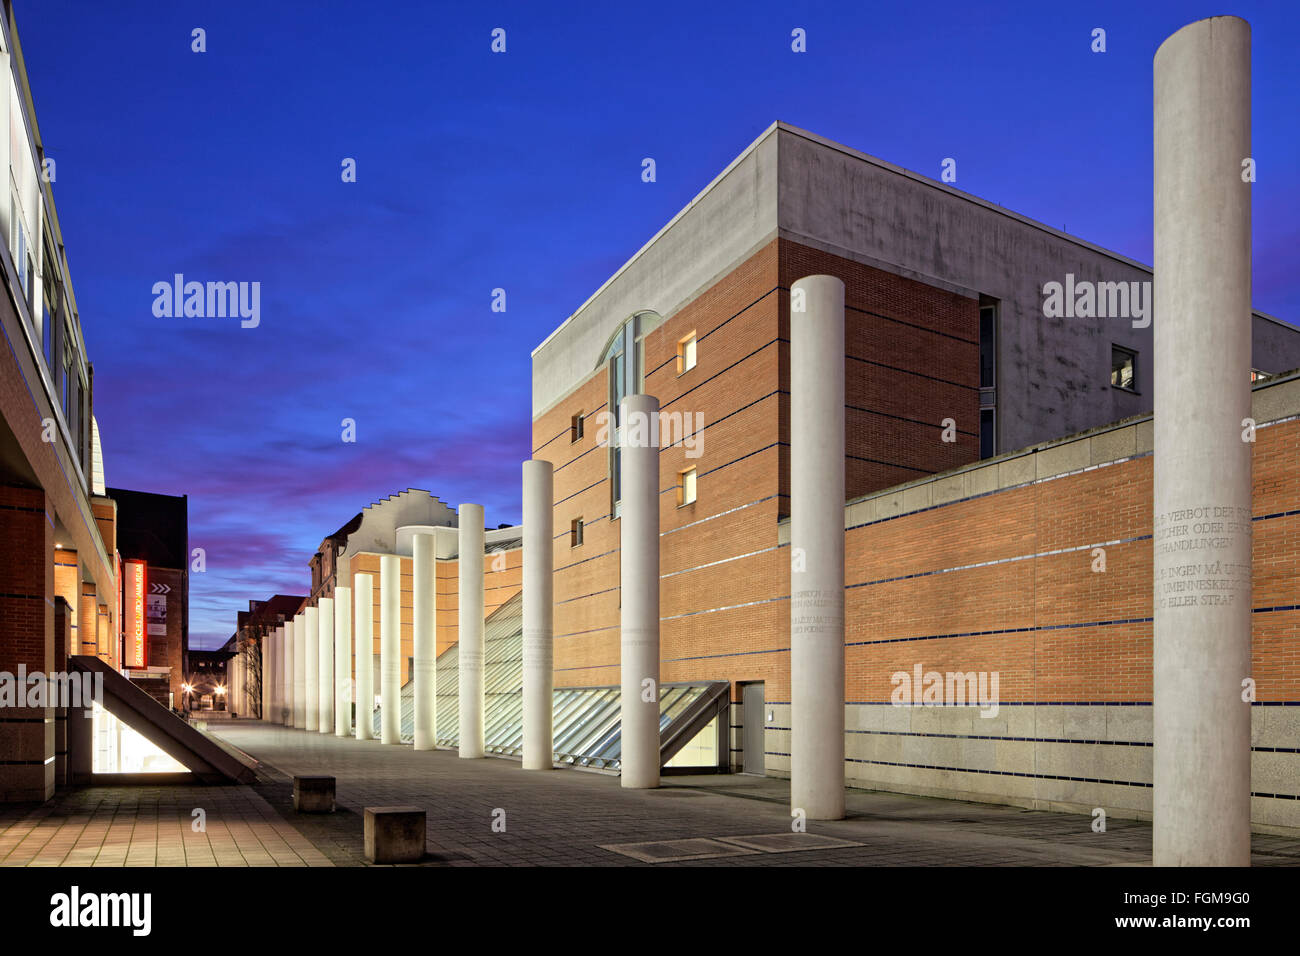 Germanisches Nationalmuseum, Way of Human Rights by sculptor Dani Karavan, historic centre, Nuremberg, Middle Franconia - Stock Image